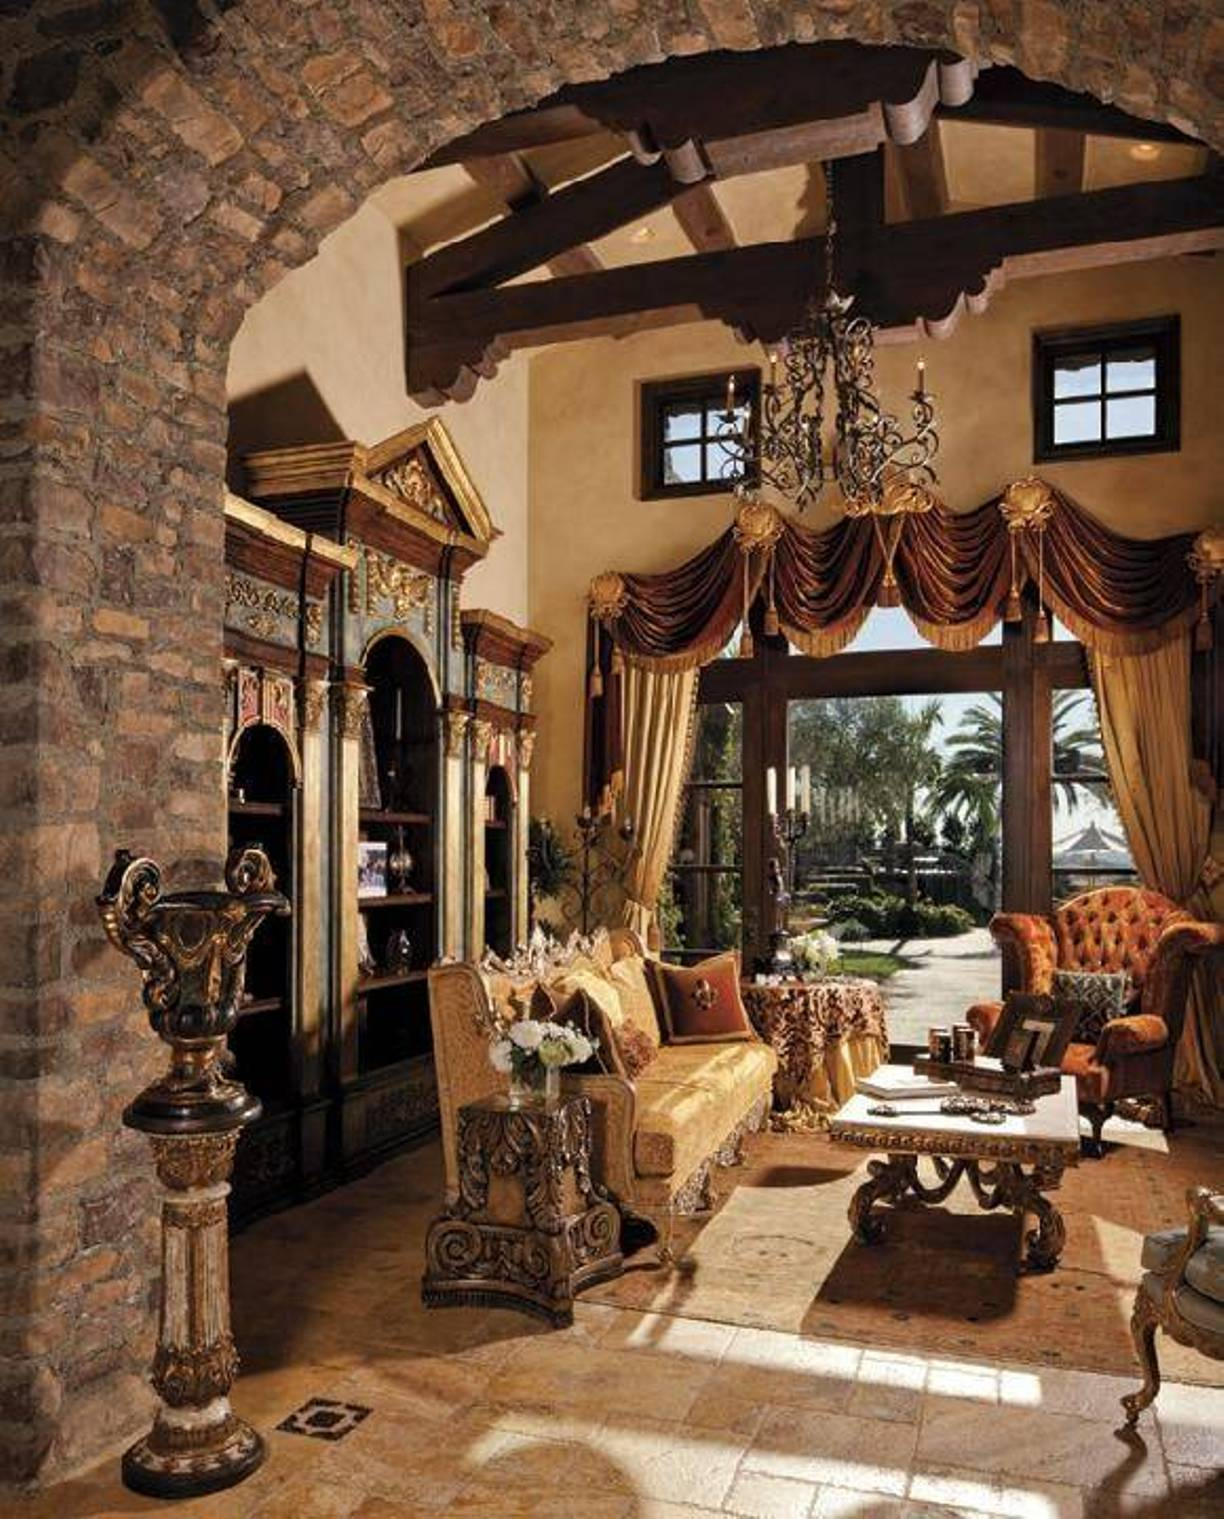 20 Awesome Tuscan Living Room Designs: 15 Awesome Tuscan Living Room Ideas